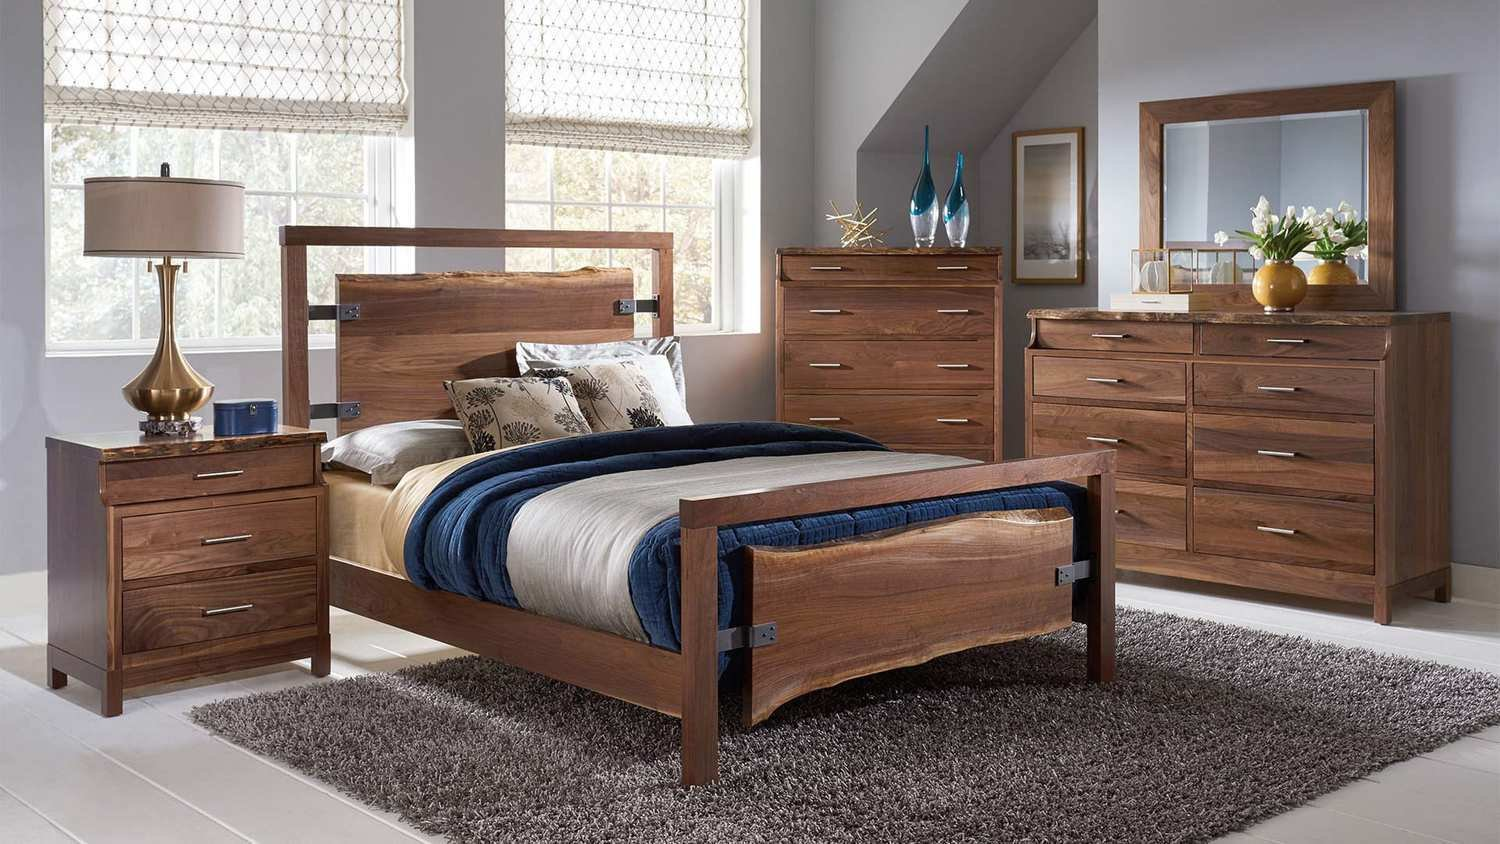 Best Amish Oak In Texas New Braunfels San Antonio Furniture With Pictures